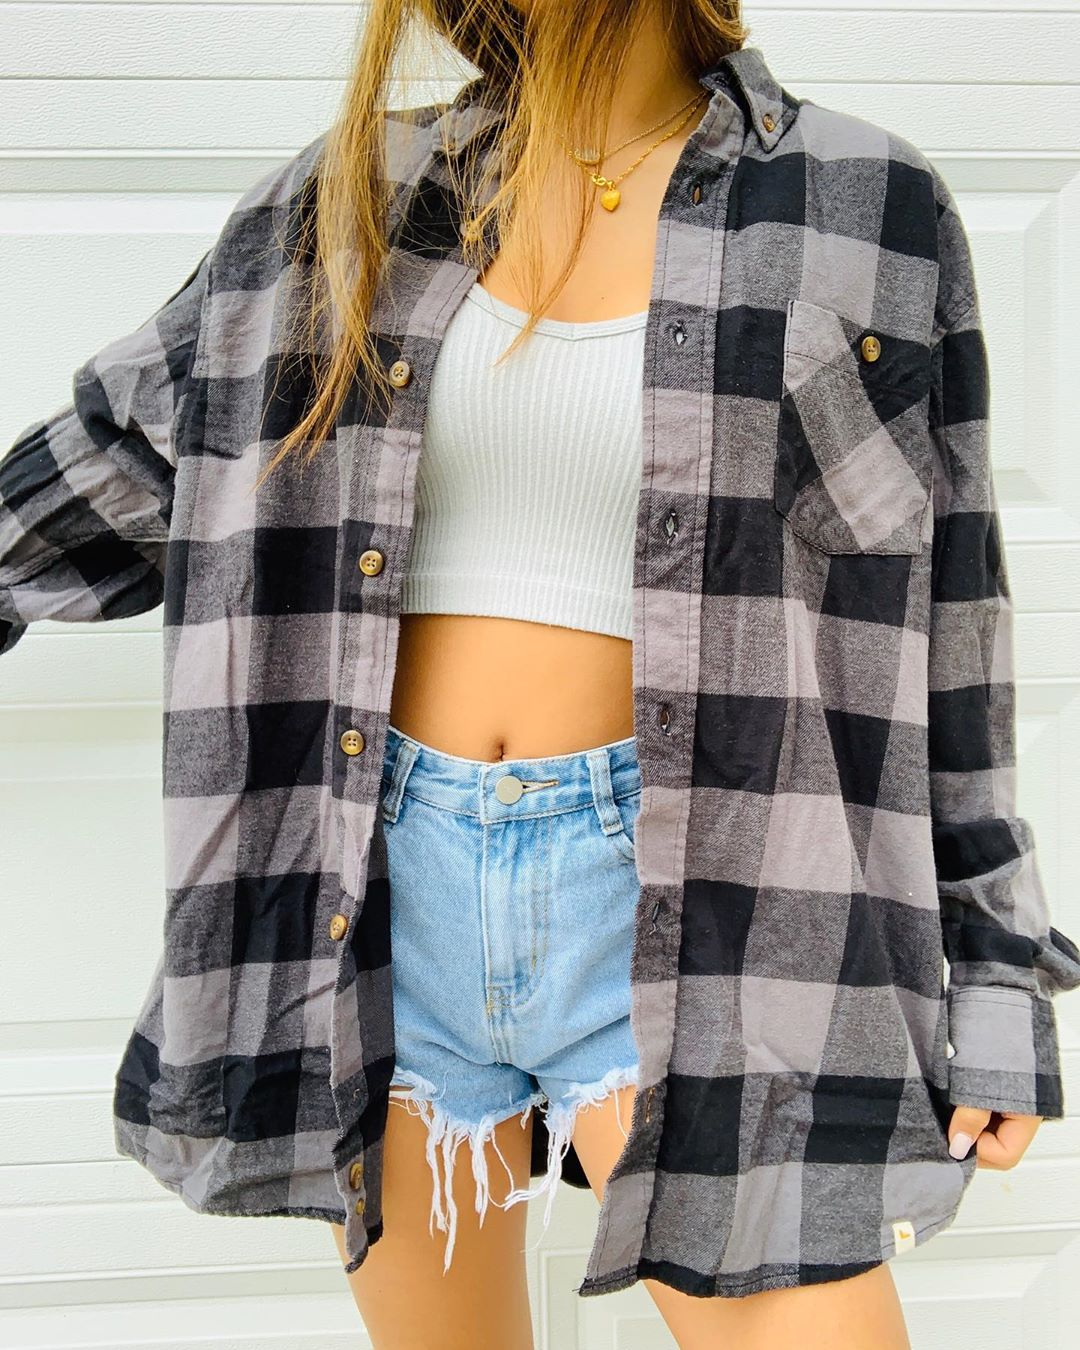 Cornelia casual plaid shirt